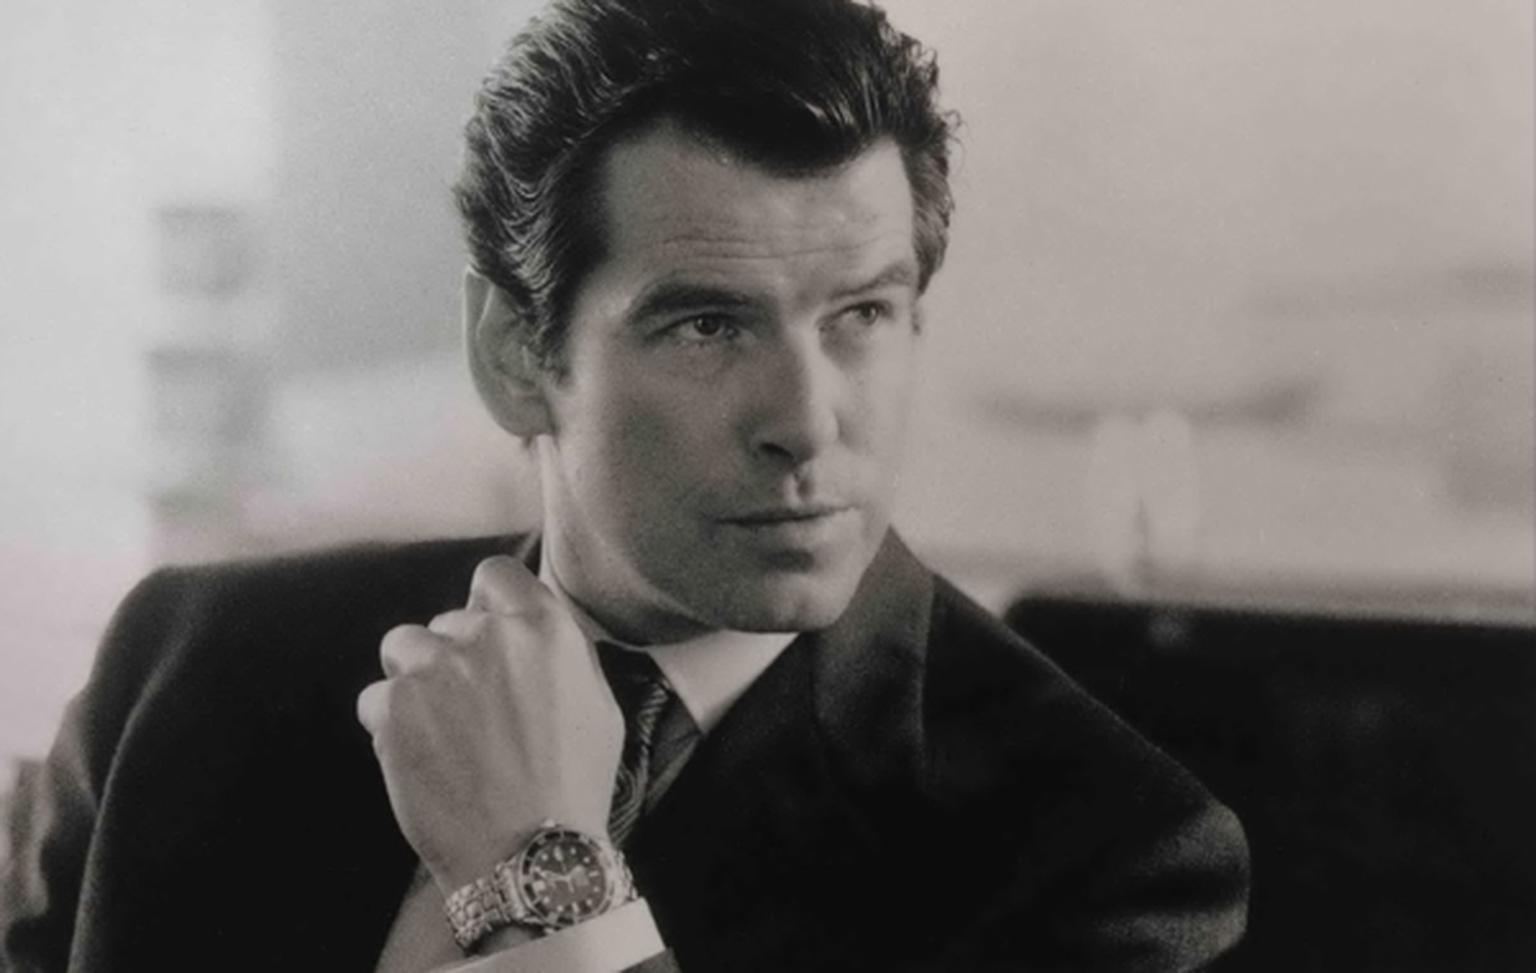 Two years after GoldenEye, a similar looking Omega watch appeared on Bond's wrist. This time, the Omega Seamaster Professional 300m watch is endowed with an automatic COSC-chronometer certified movement.